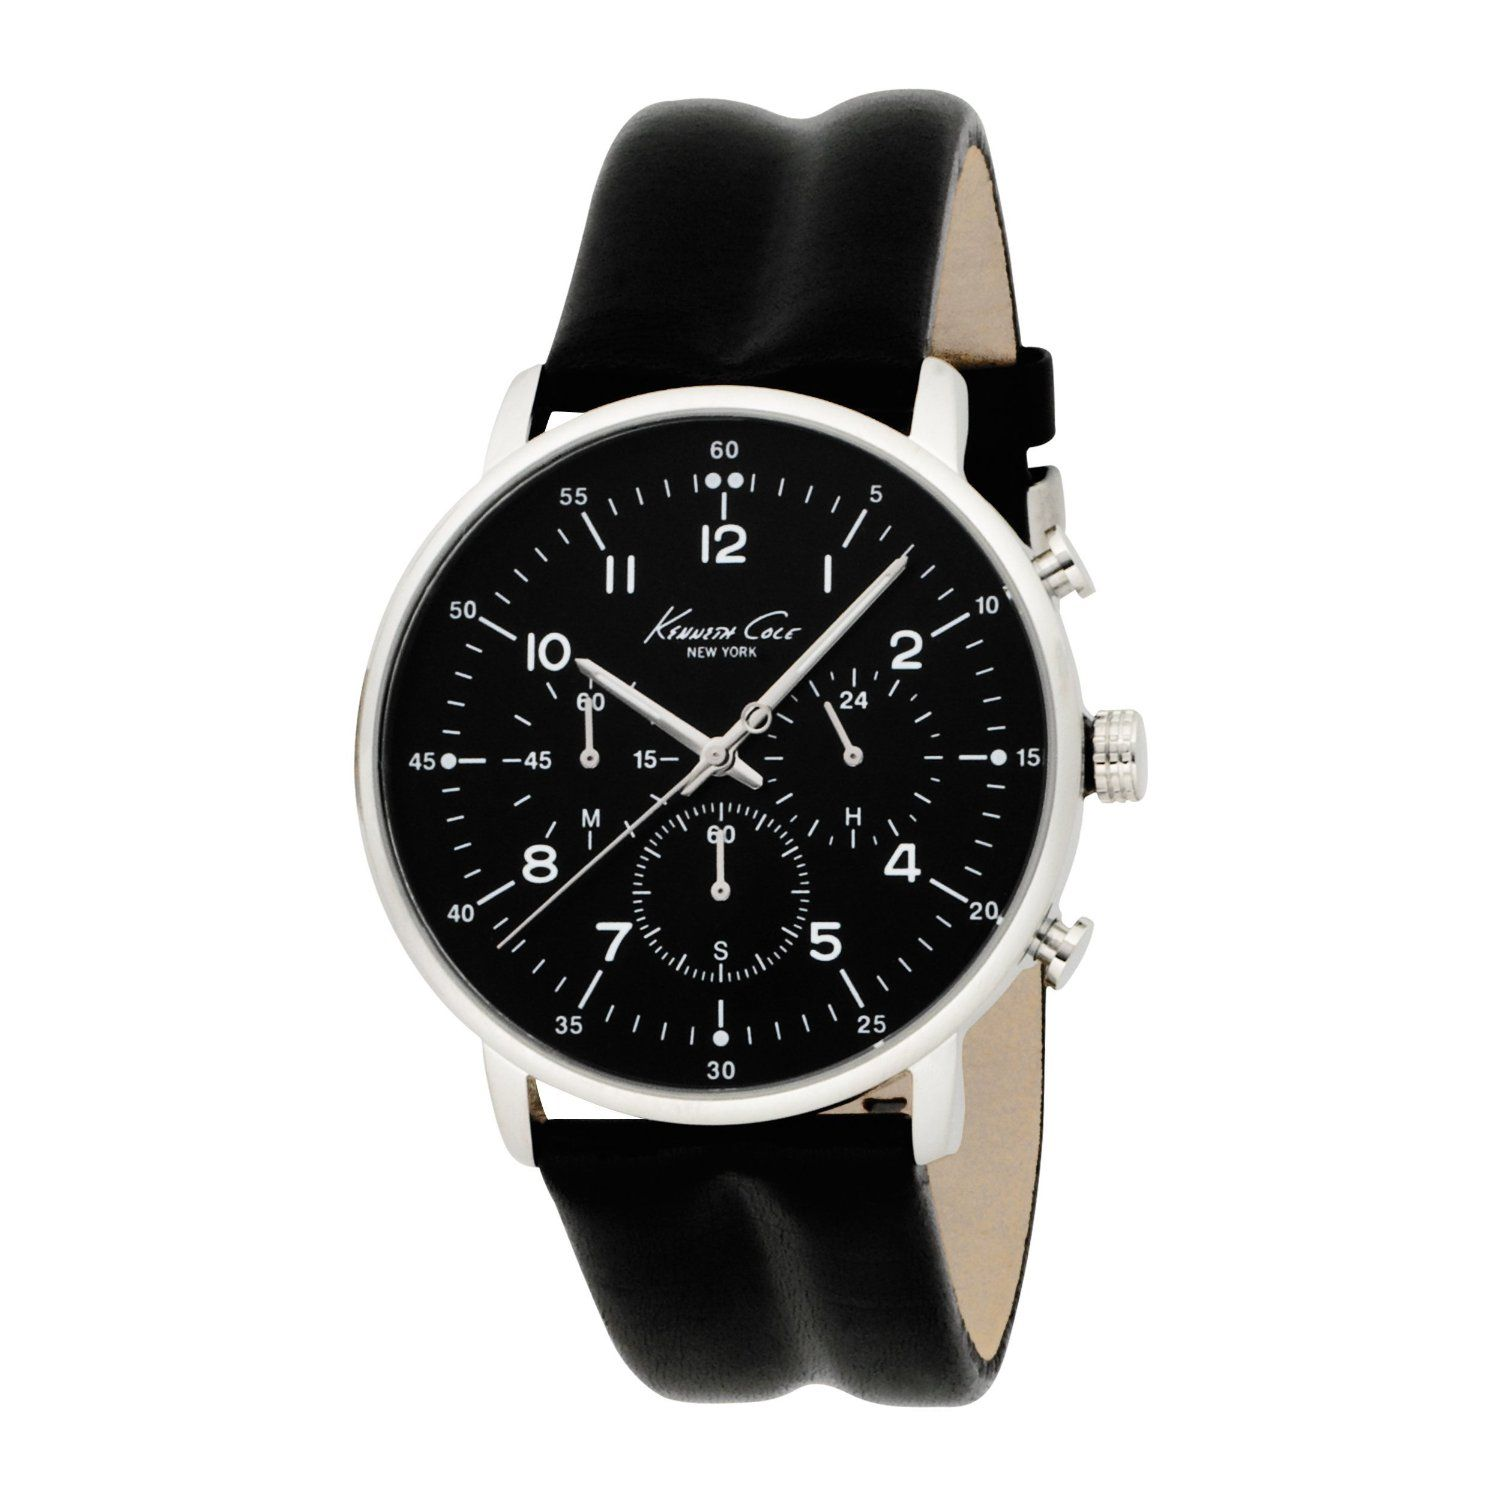 Pin By Pe Feeds On My Stuff Leather Straps Kenneth Cole New York Kenneth Cole Watch [ 1500 x 1500 Pixel ]